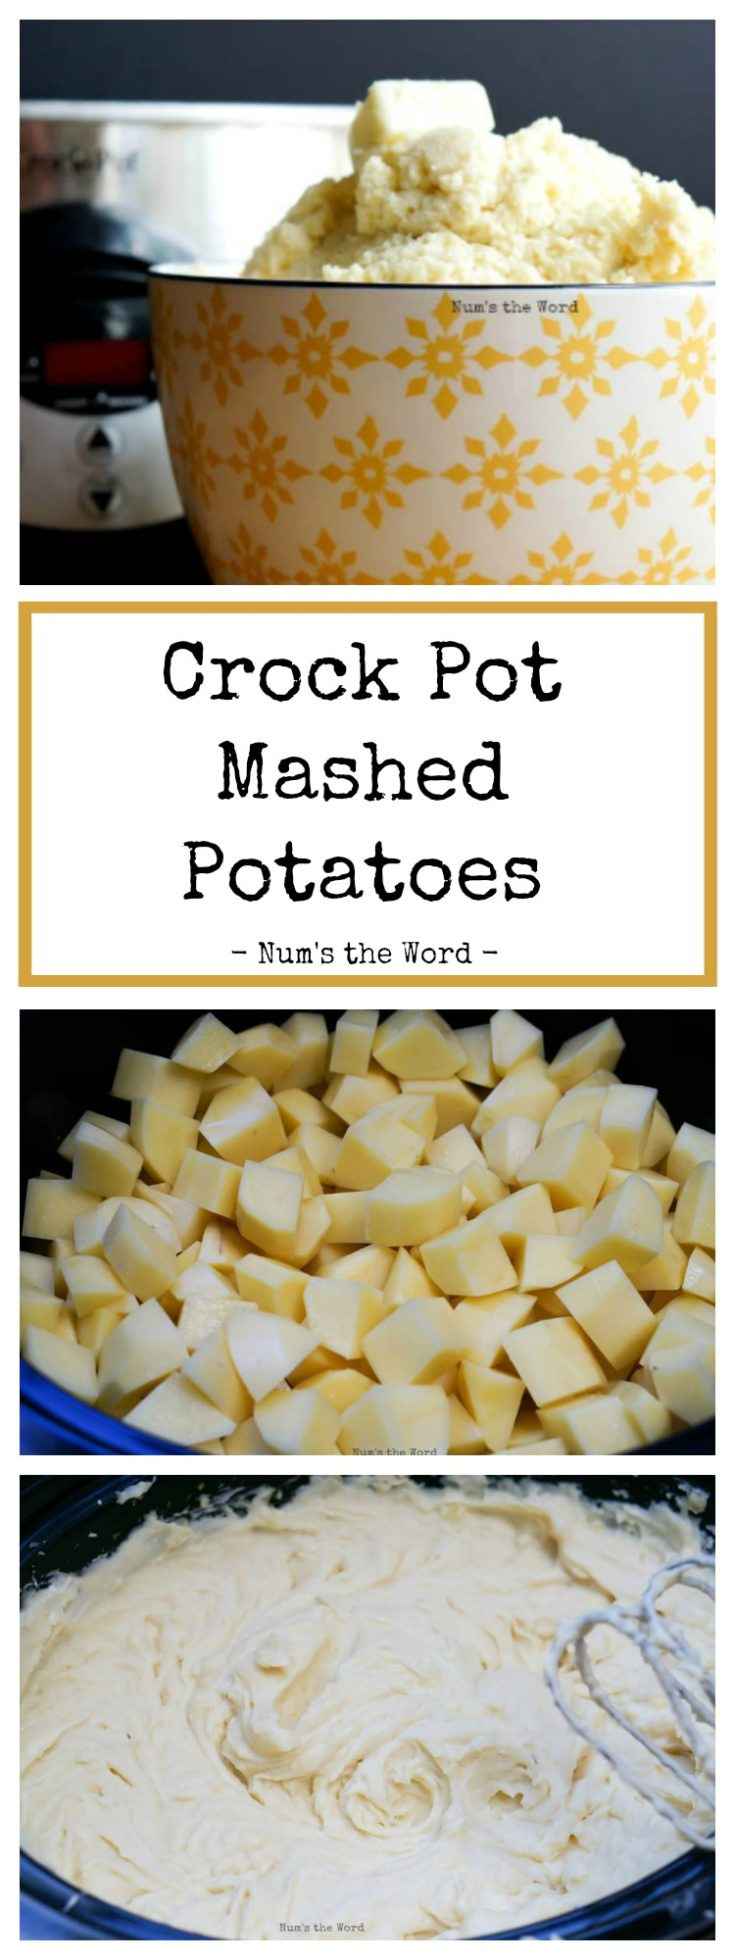 These Crock Pot Mashed Potatoes make cooking for a crowd easy!  From start to finish these potatoes are cooked, mashed and blended in the crock pot!  Perfect for Thanksgiving, Christmas or Easter dinner!